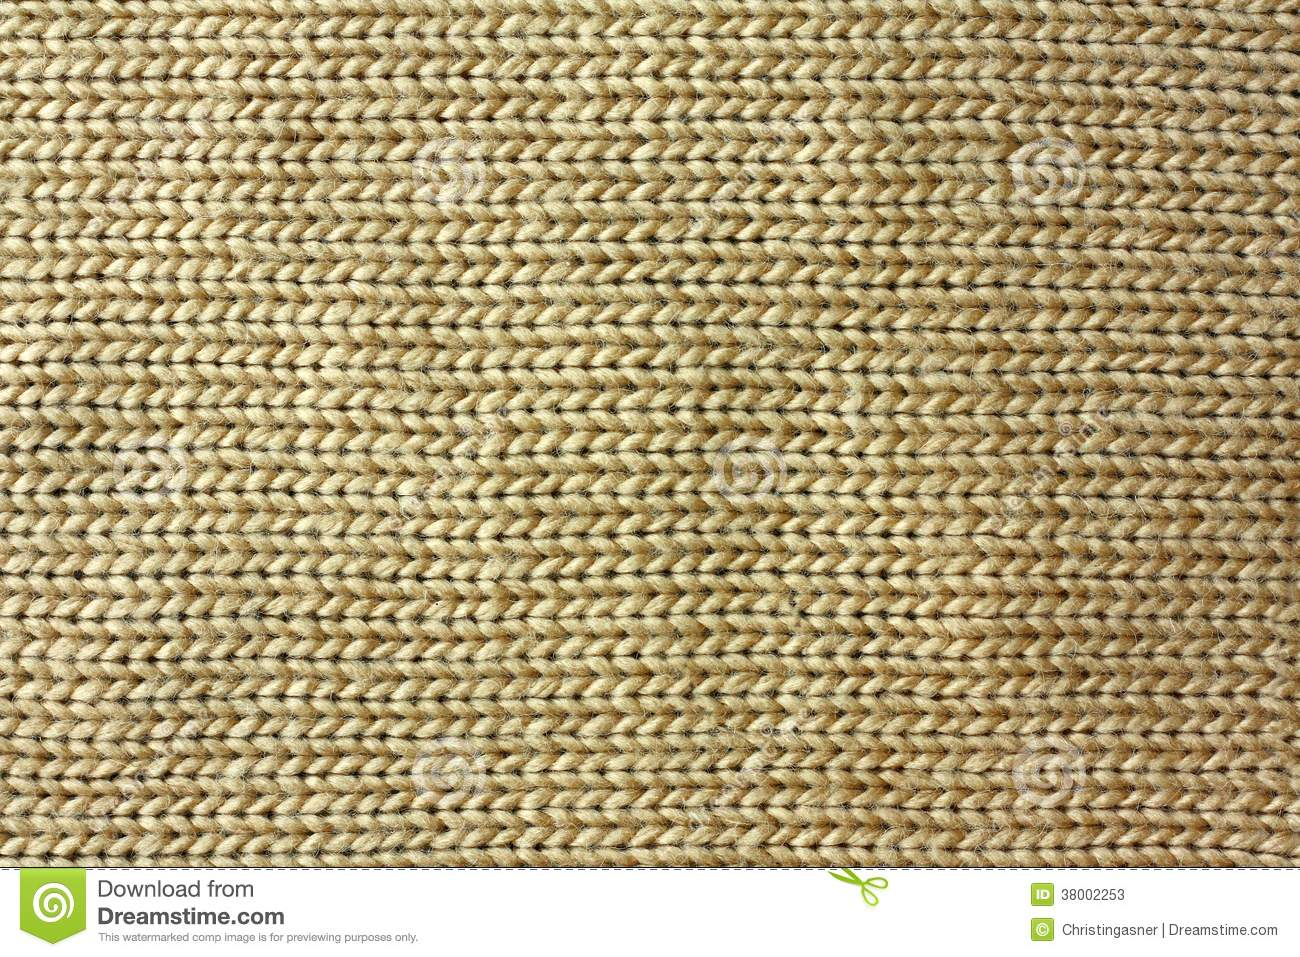 knitted fabric Find knit fabric at fabriccom enjoy free shipping on domestic orders $49+ and free returns shop fabric like jersey knit, double knit, ponte knit, sweater knit and more.